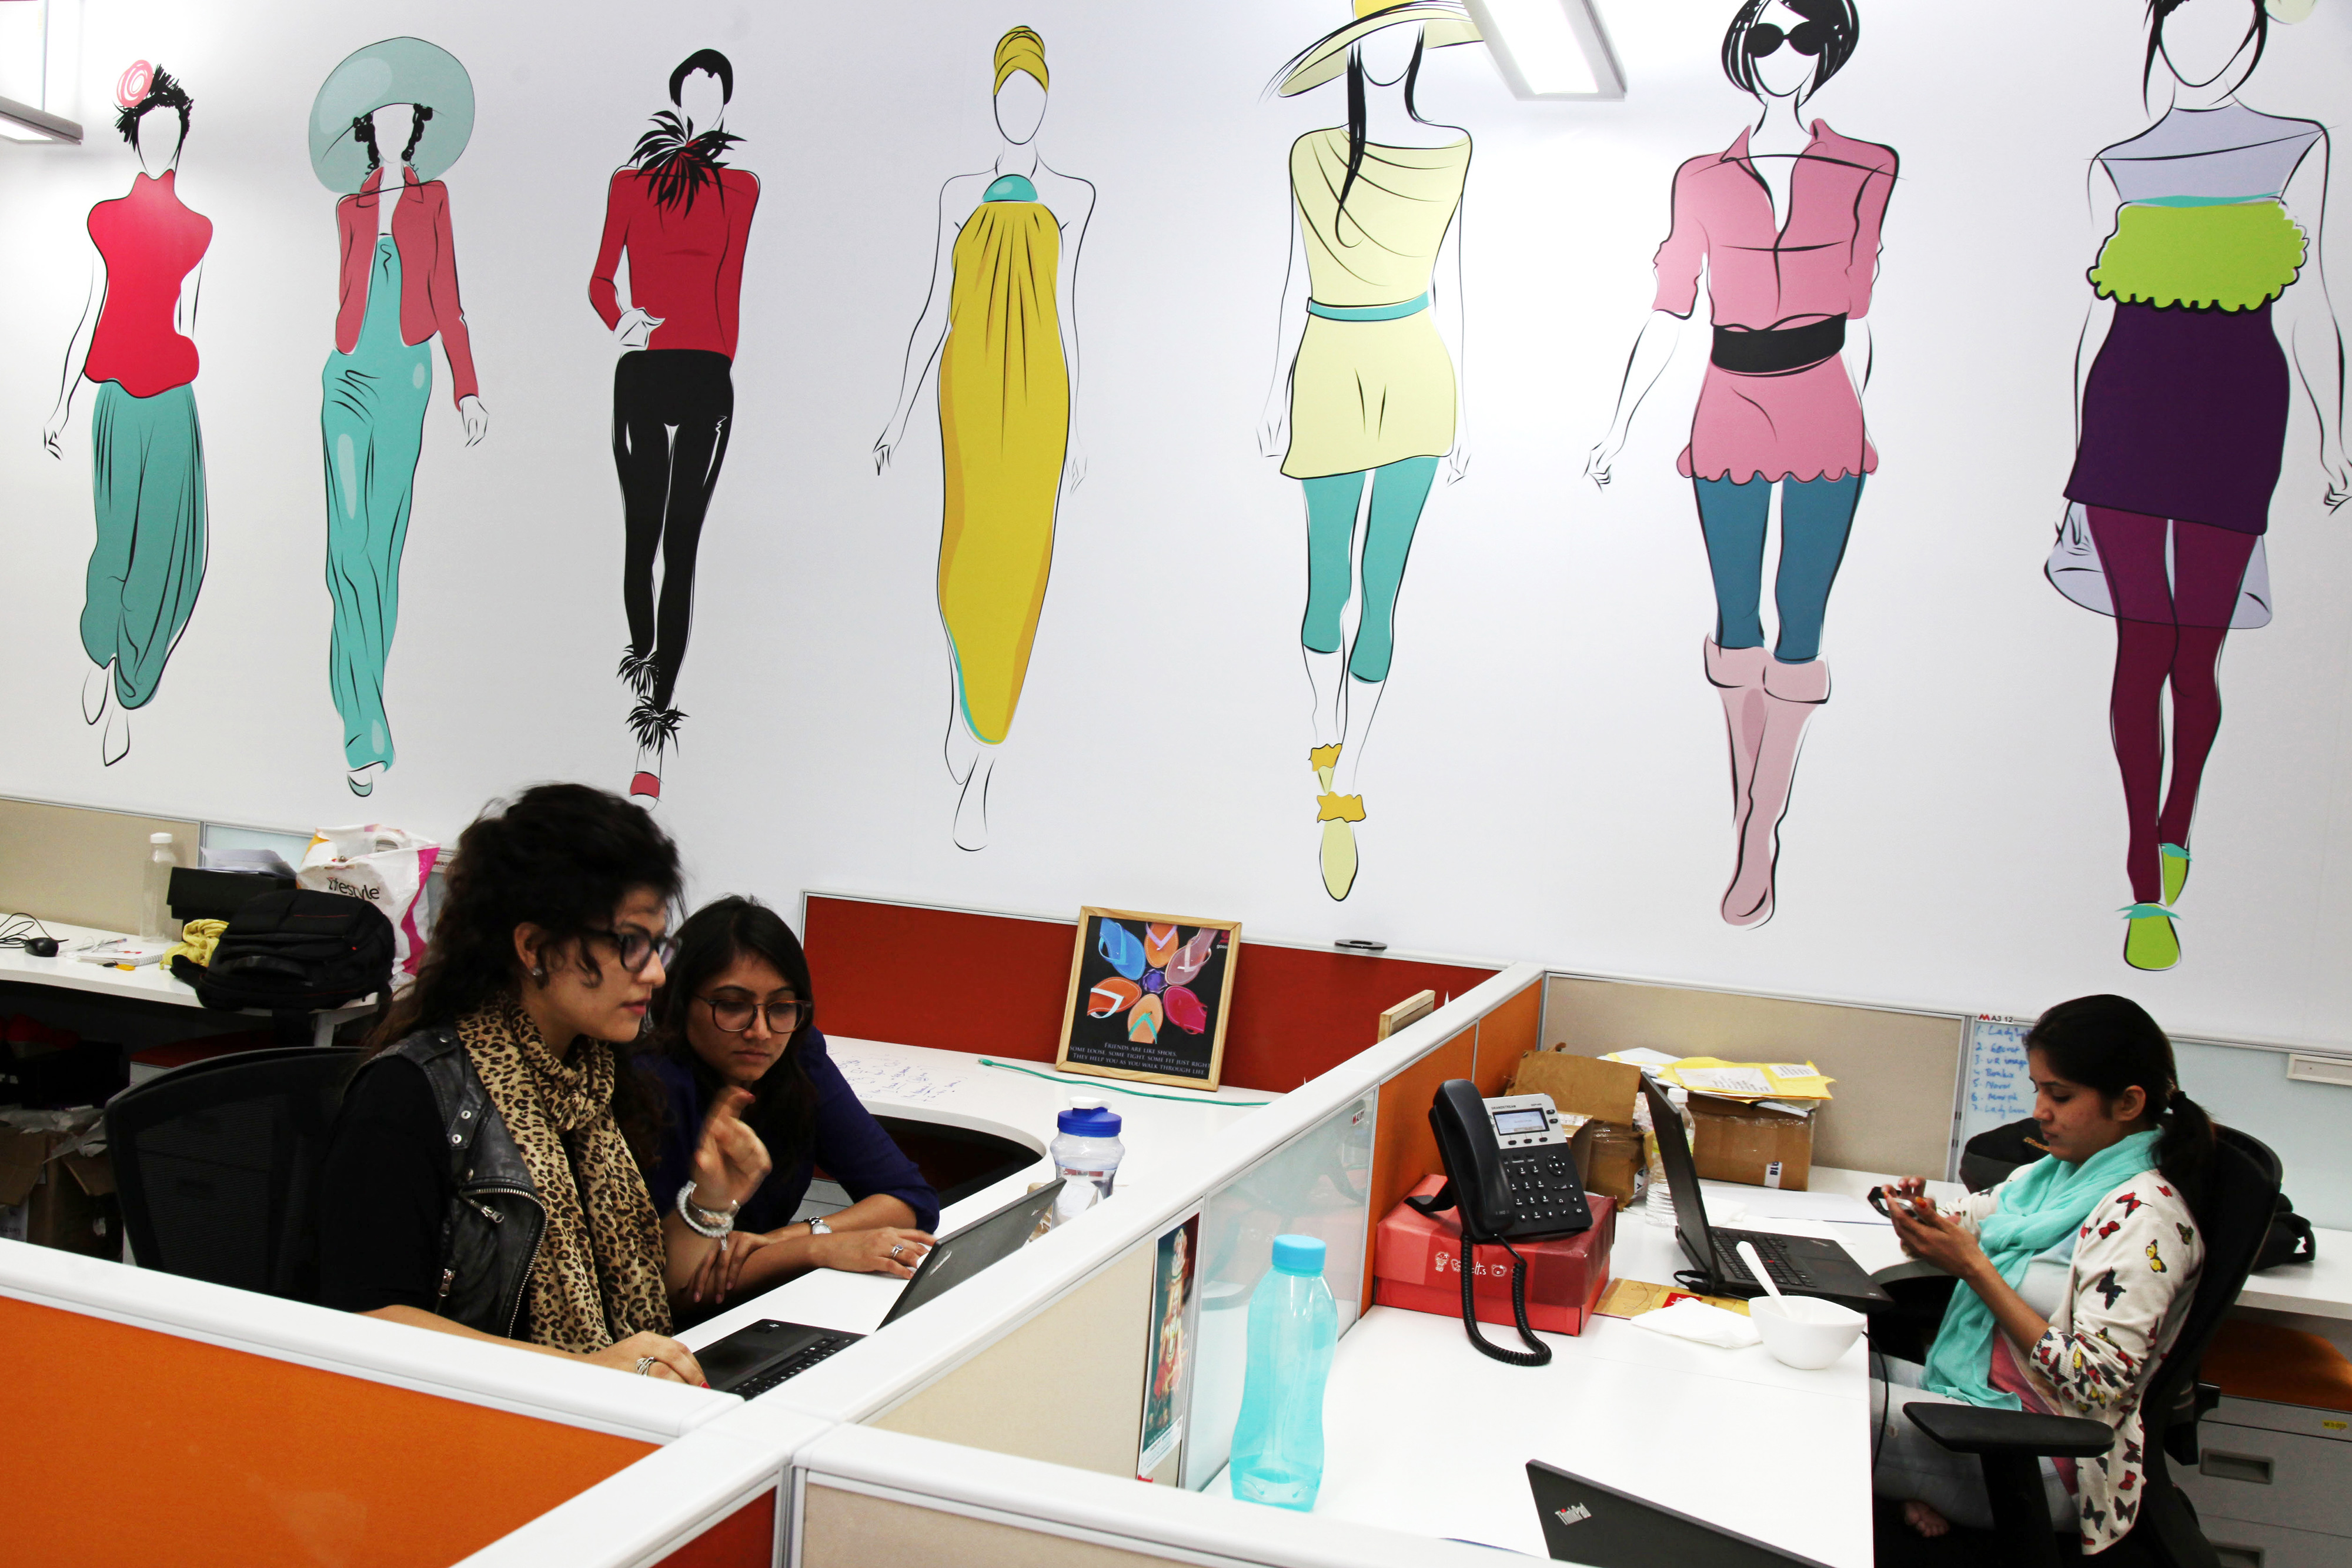 Myntra.com Chief Executive Officer Ananth Narayanan Interview